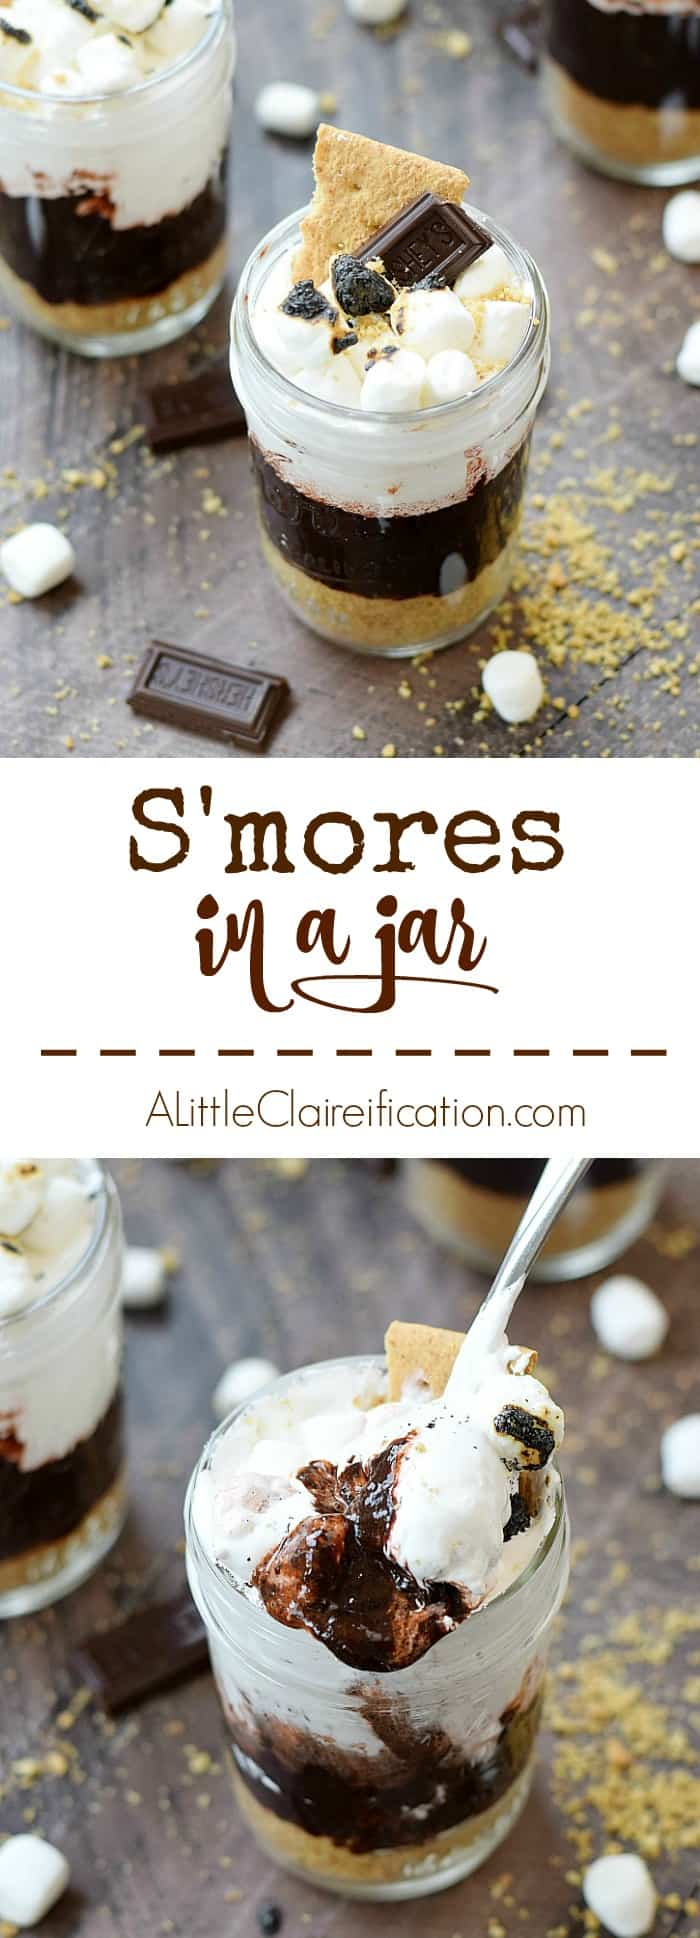 No campfire is required to make these cool and creamy S'mores in a Jar, and they are perfect anytime of the year | www.aclaireification.com